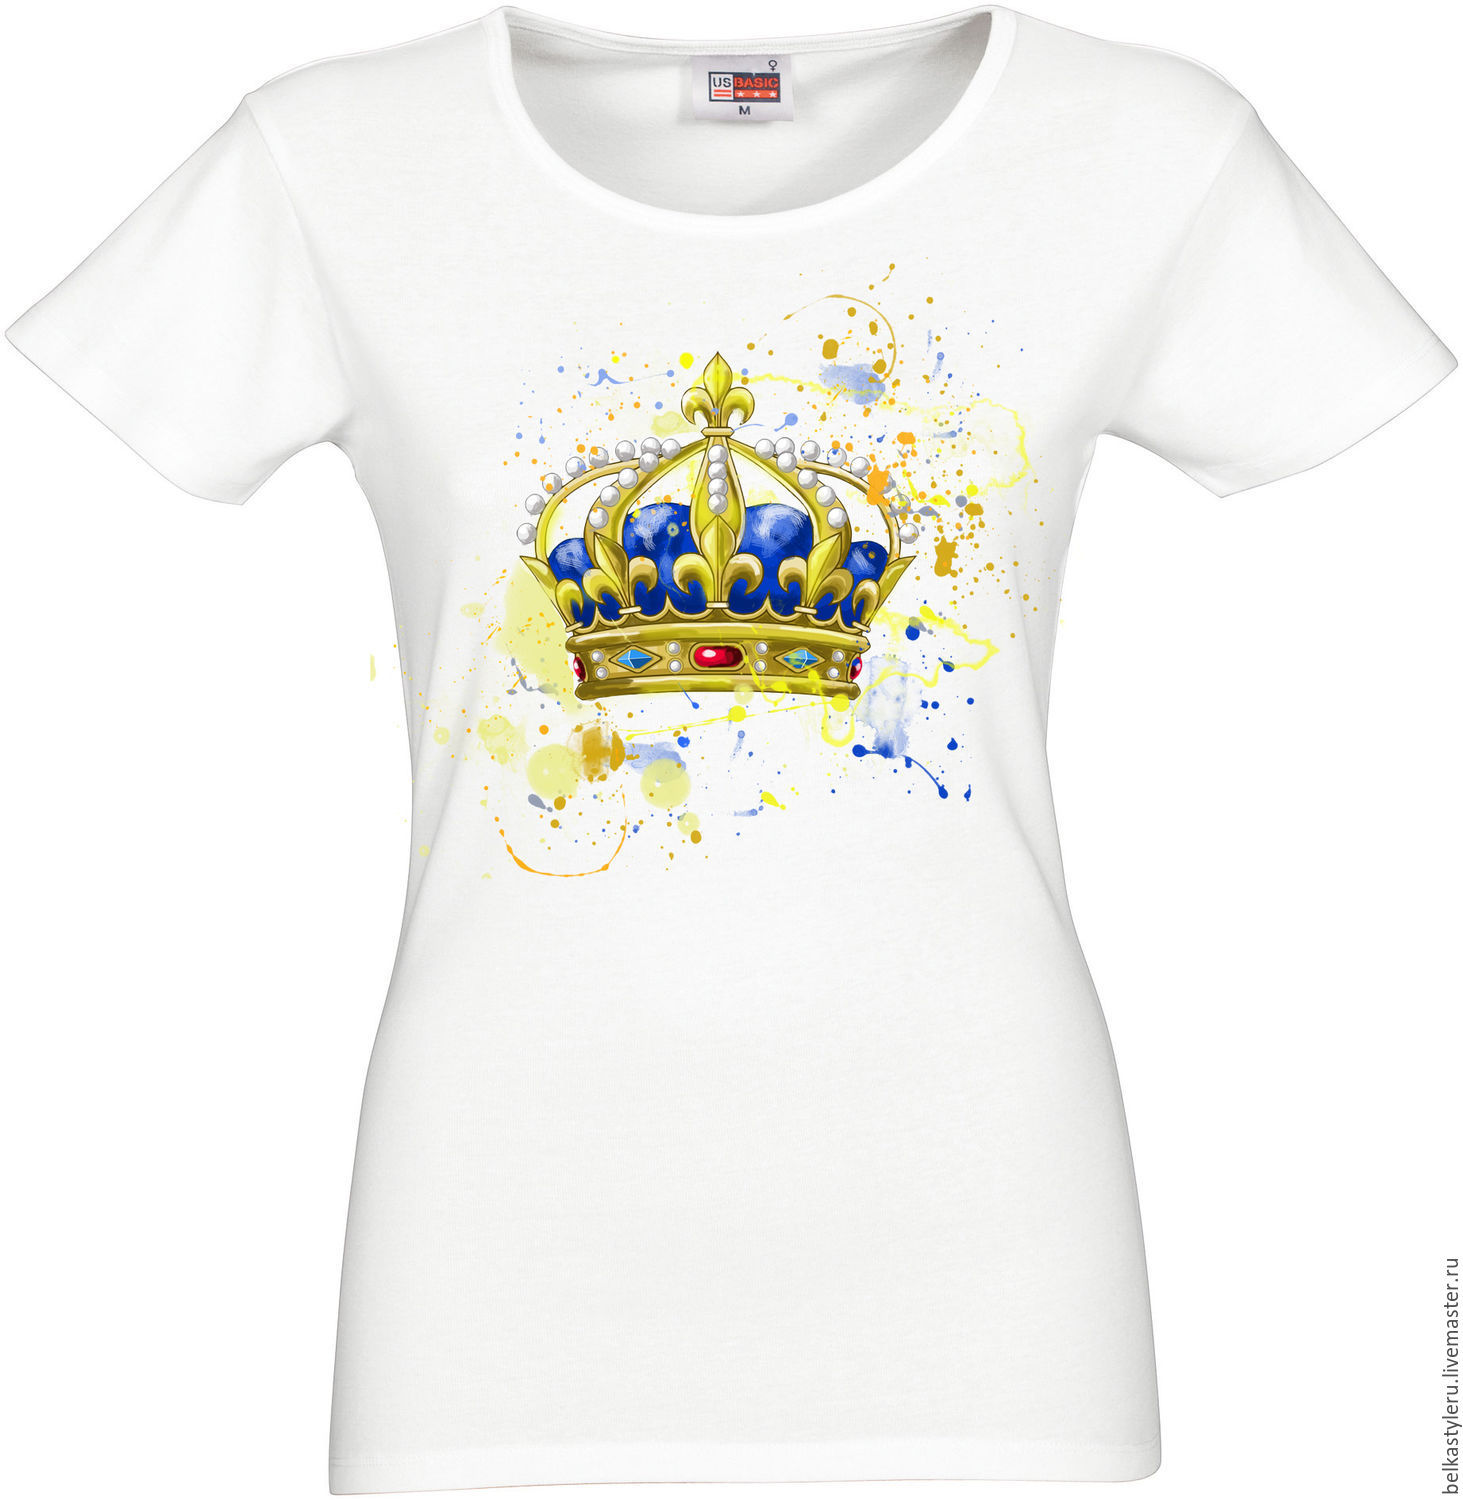 Design t shirt hand made -  Handmade T Shirt Hand Painted Crown Belkastyle Download